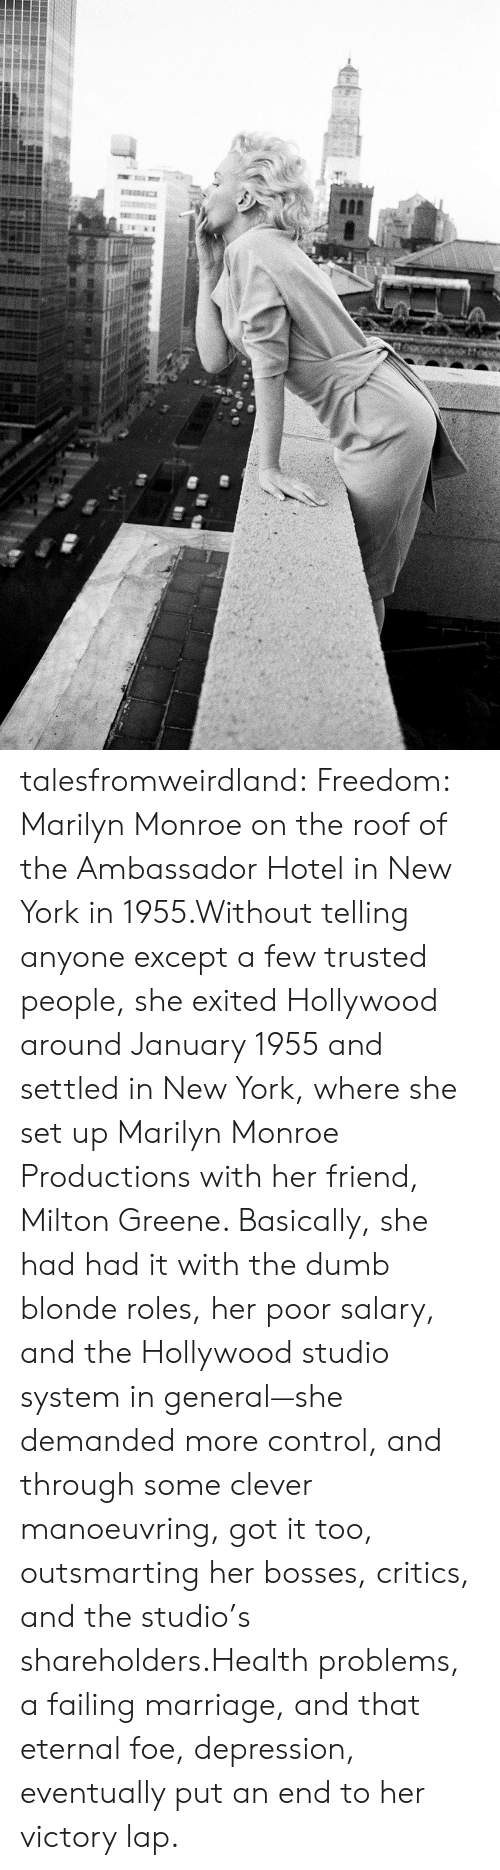 Dumb, Marriage, and New York: talesfromweirdland:  Freedom: Marilyn Monroe on the roof of the Ambassador Hotel in New York in 1955.Without telling anyone except a few trusted people, she exited Hollywood around January 1955 and settled in New York, where she set up Marilyn Monroe Productions with her friend, Milton Greene. Basically, she had had it with the dumb blonde roles, her poor salary, and the Hollywood studio system in general—she demanded more control, and through some clever manoeuvring, got it too, outsmarting her bosses, critics, and the studio's shareholders.Health problems, a failing marriage, and that eternal foe, depression, eventually put an end to her victory lap.